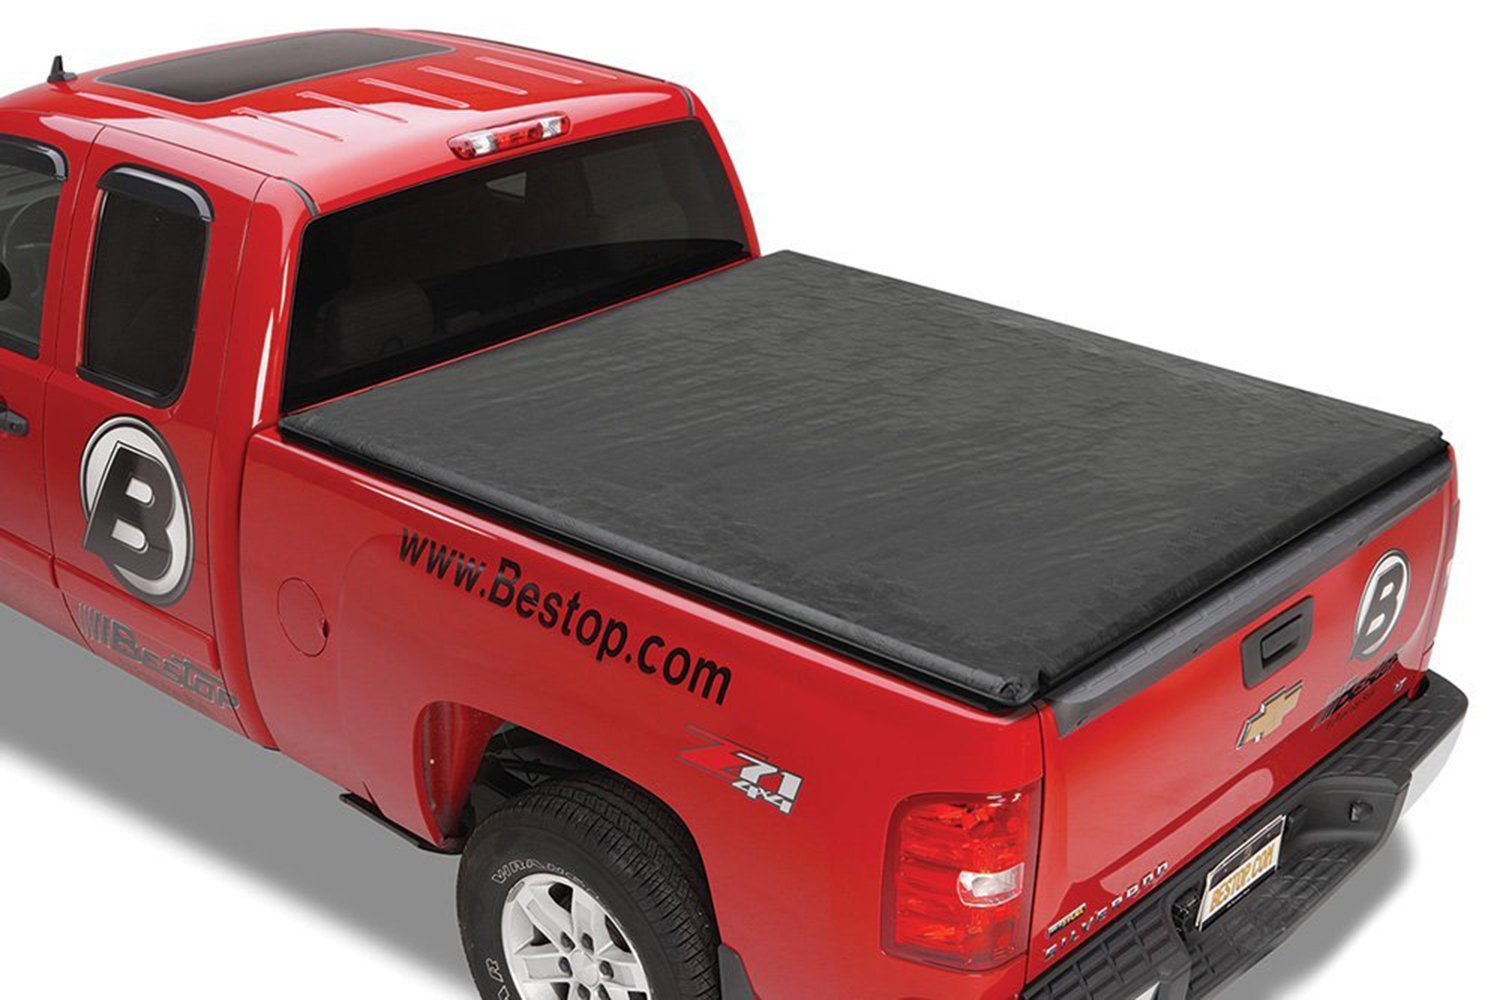 Silverado 1996 chevy silverado accessories : Truck Parts and Accessories | Amazon.com